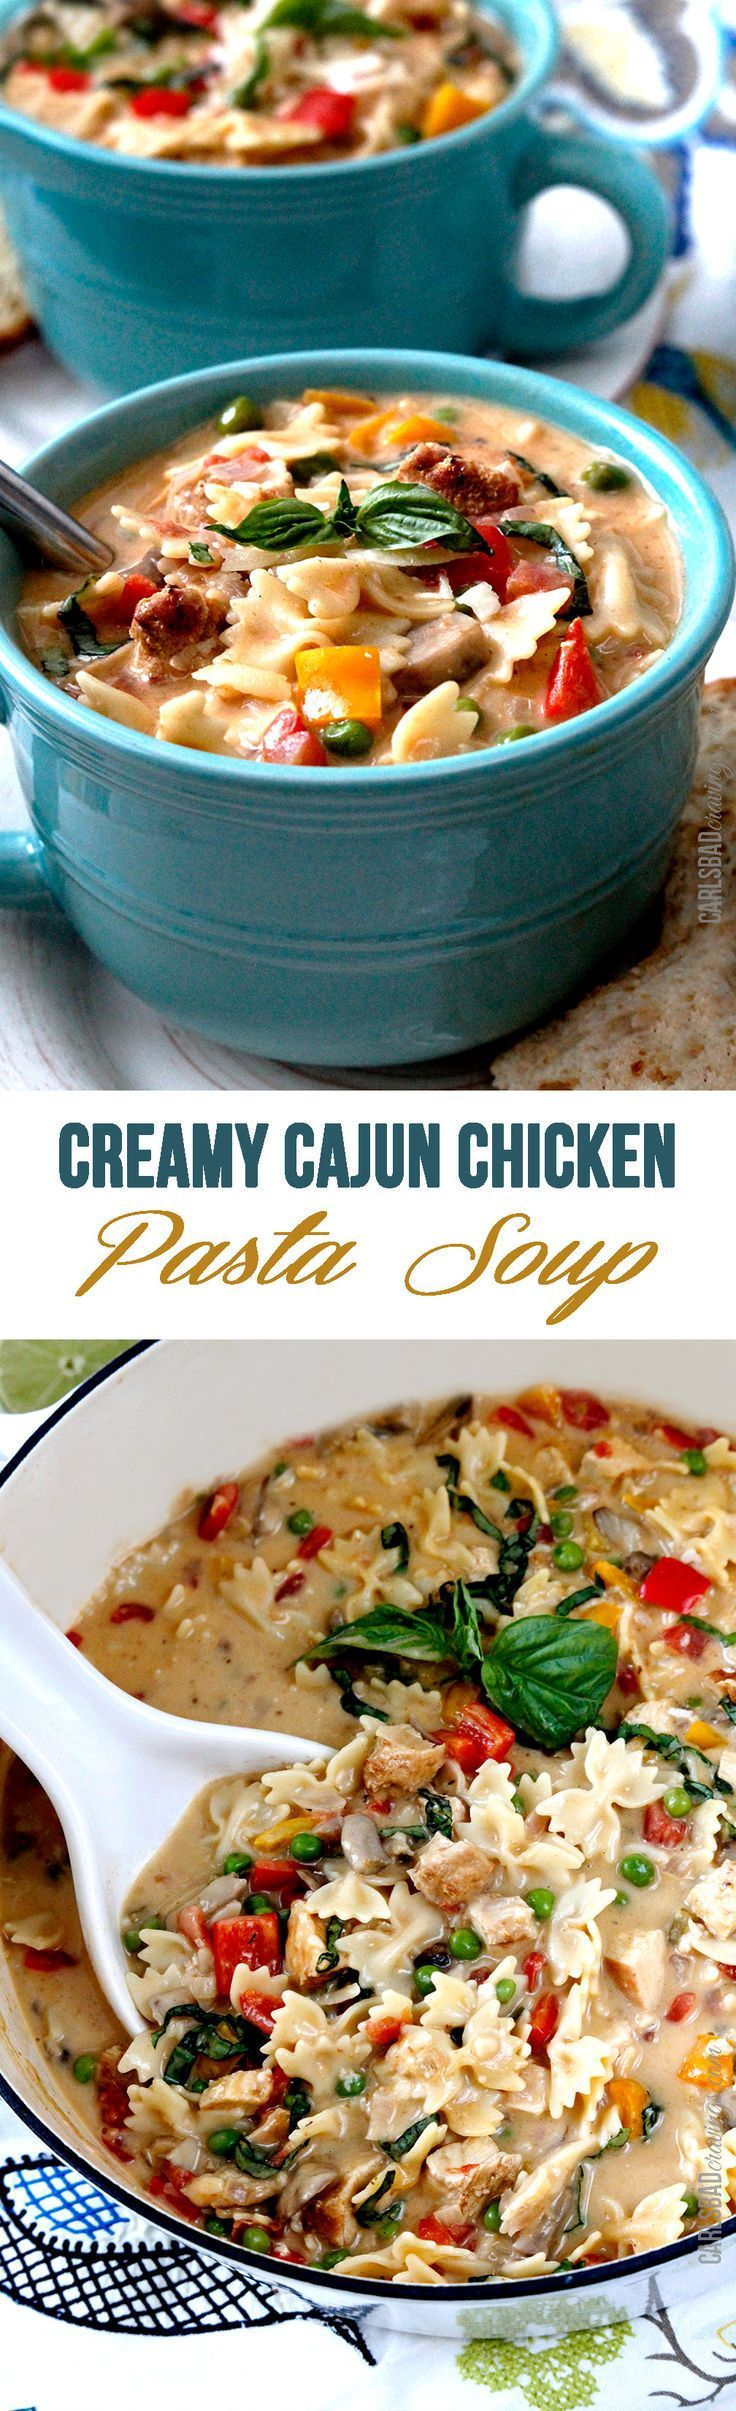 Creamy Cajun Chicken Pasta Soup -- everything you love about the cajun chicken pasta, but in an incredible creamy broth! http://www.carlsbadcravings.com/creamy-cajun-chicken-pasta-soup/